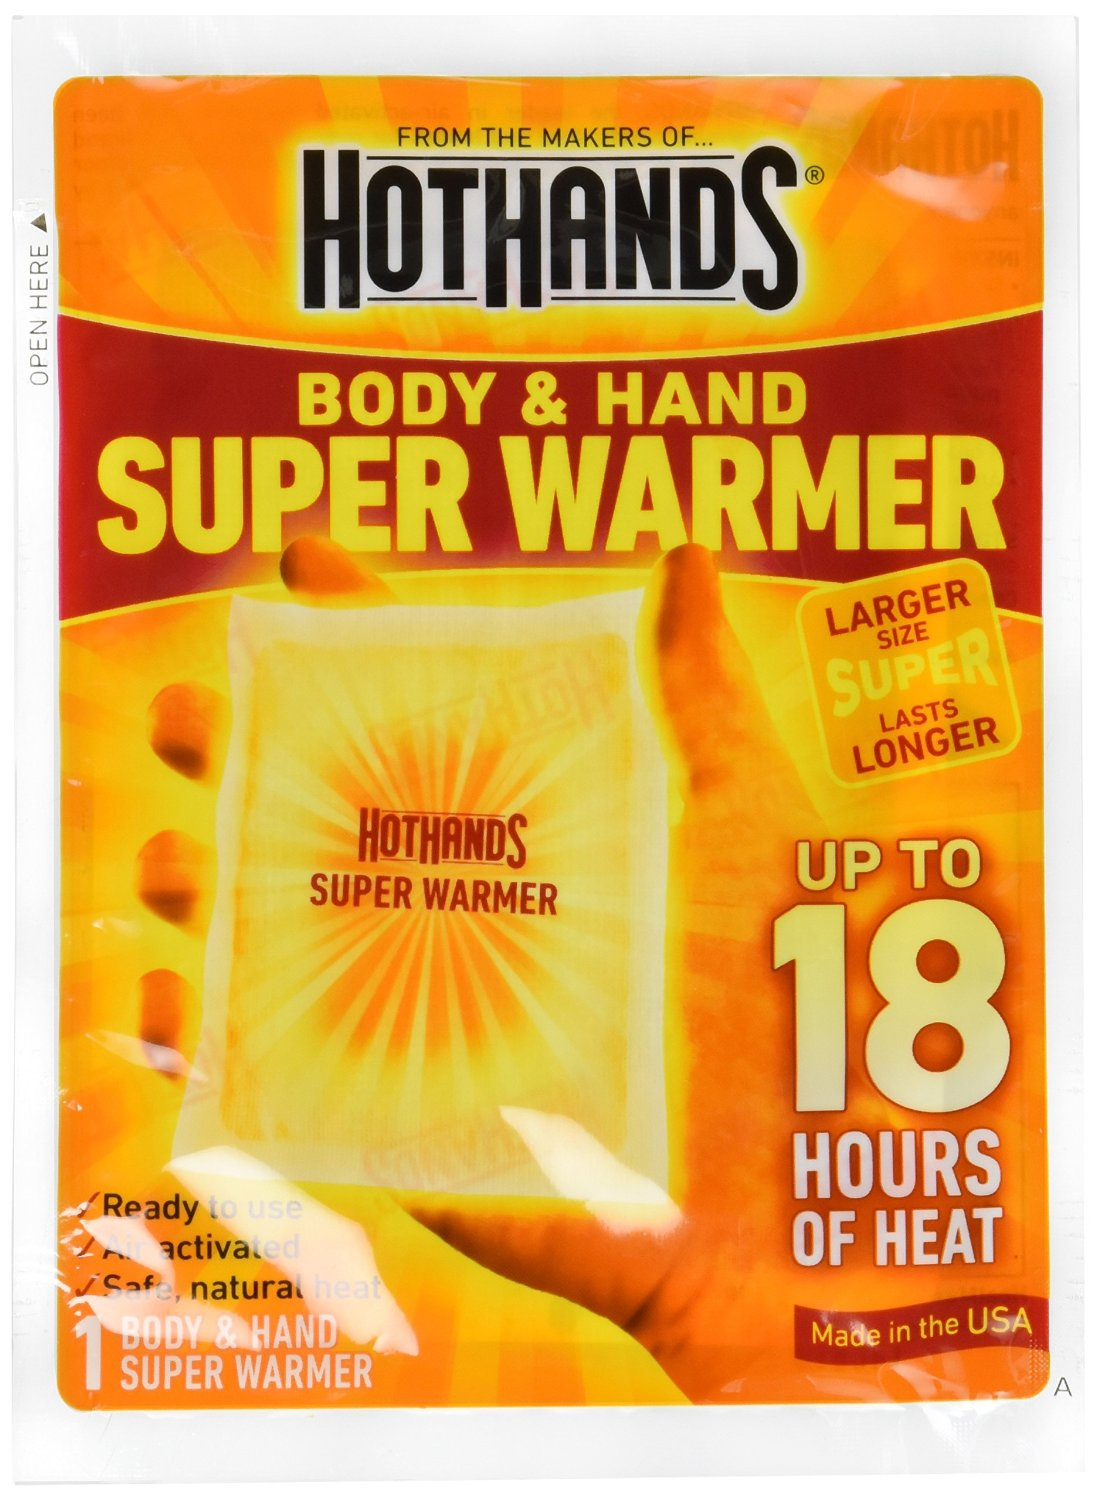 40 Pack HotHands Body & Hand Super Warmer 40 Pack by